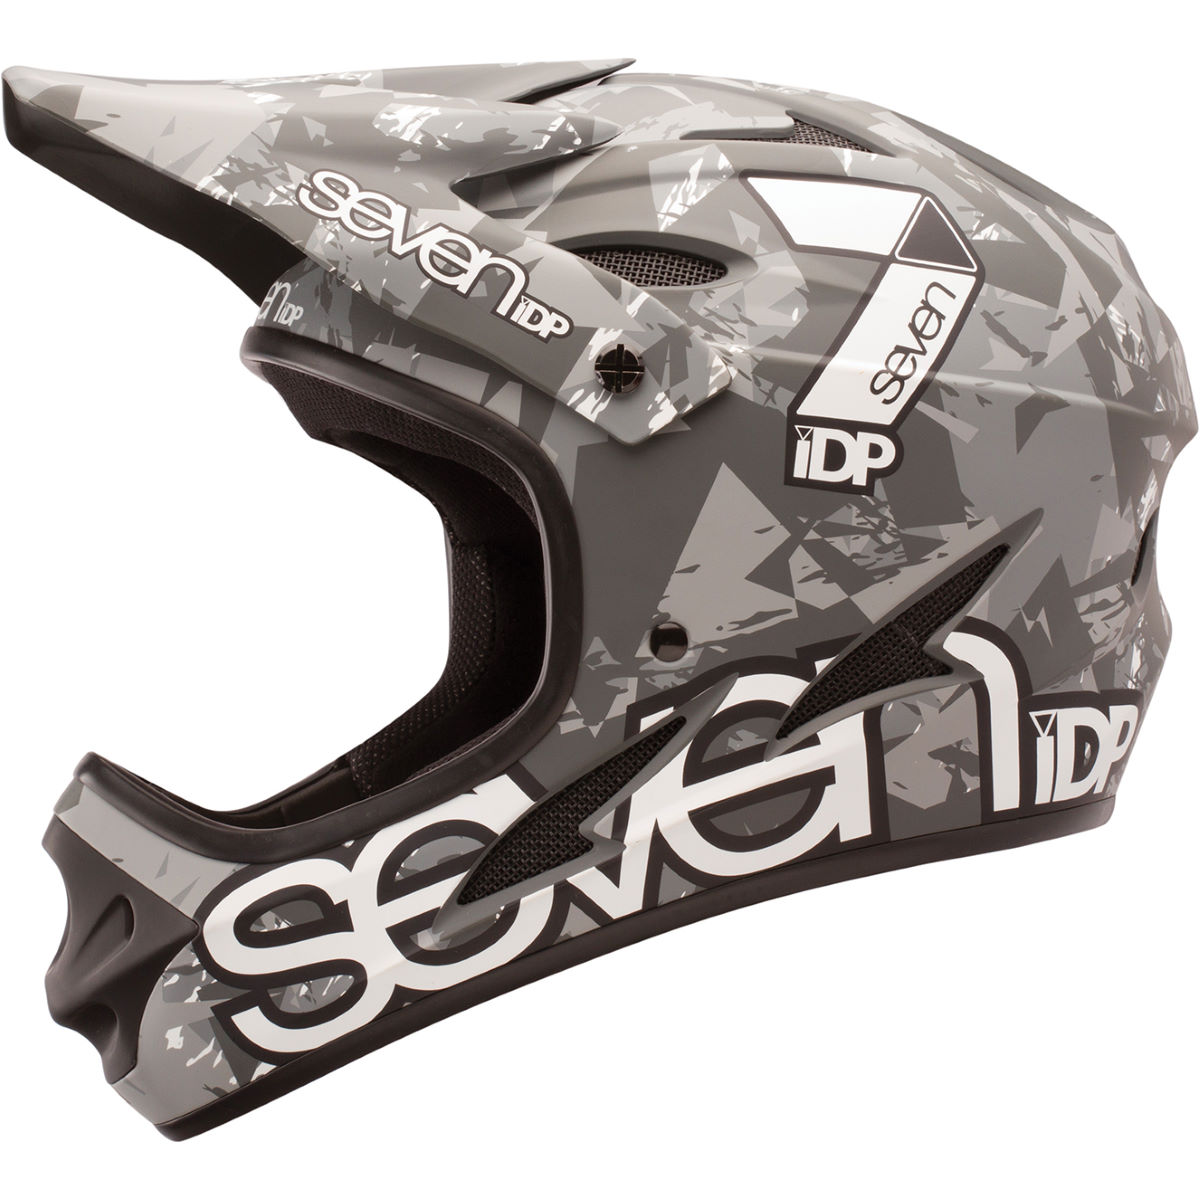 Casque 7 iDP M1 - L Black - White - Grey Casques VTT